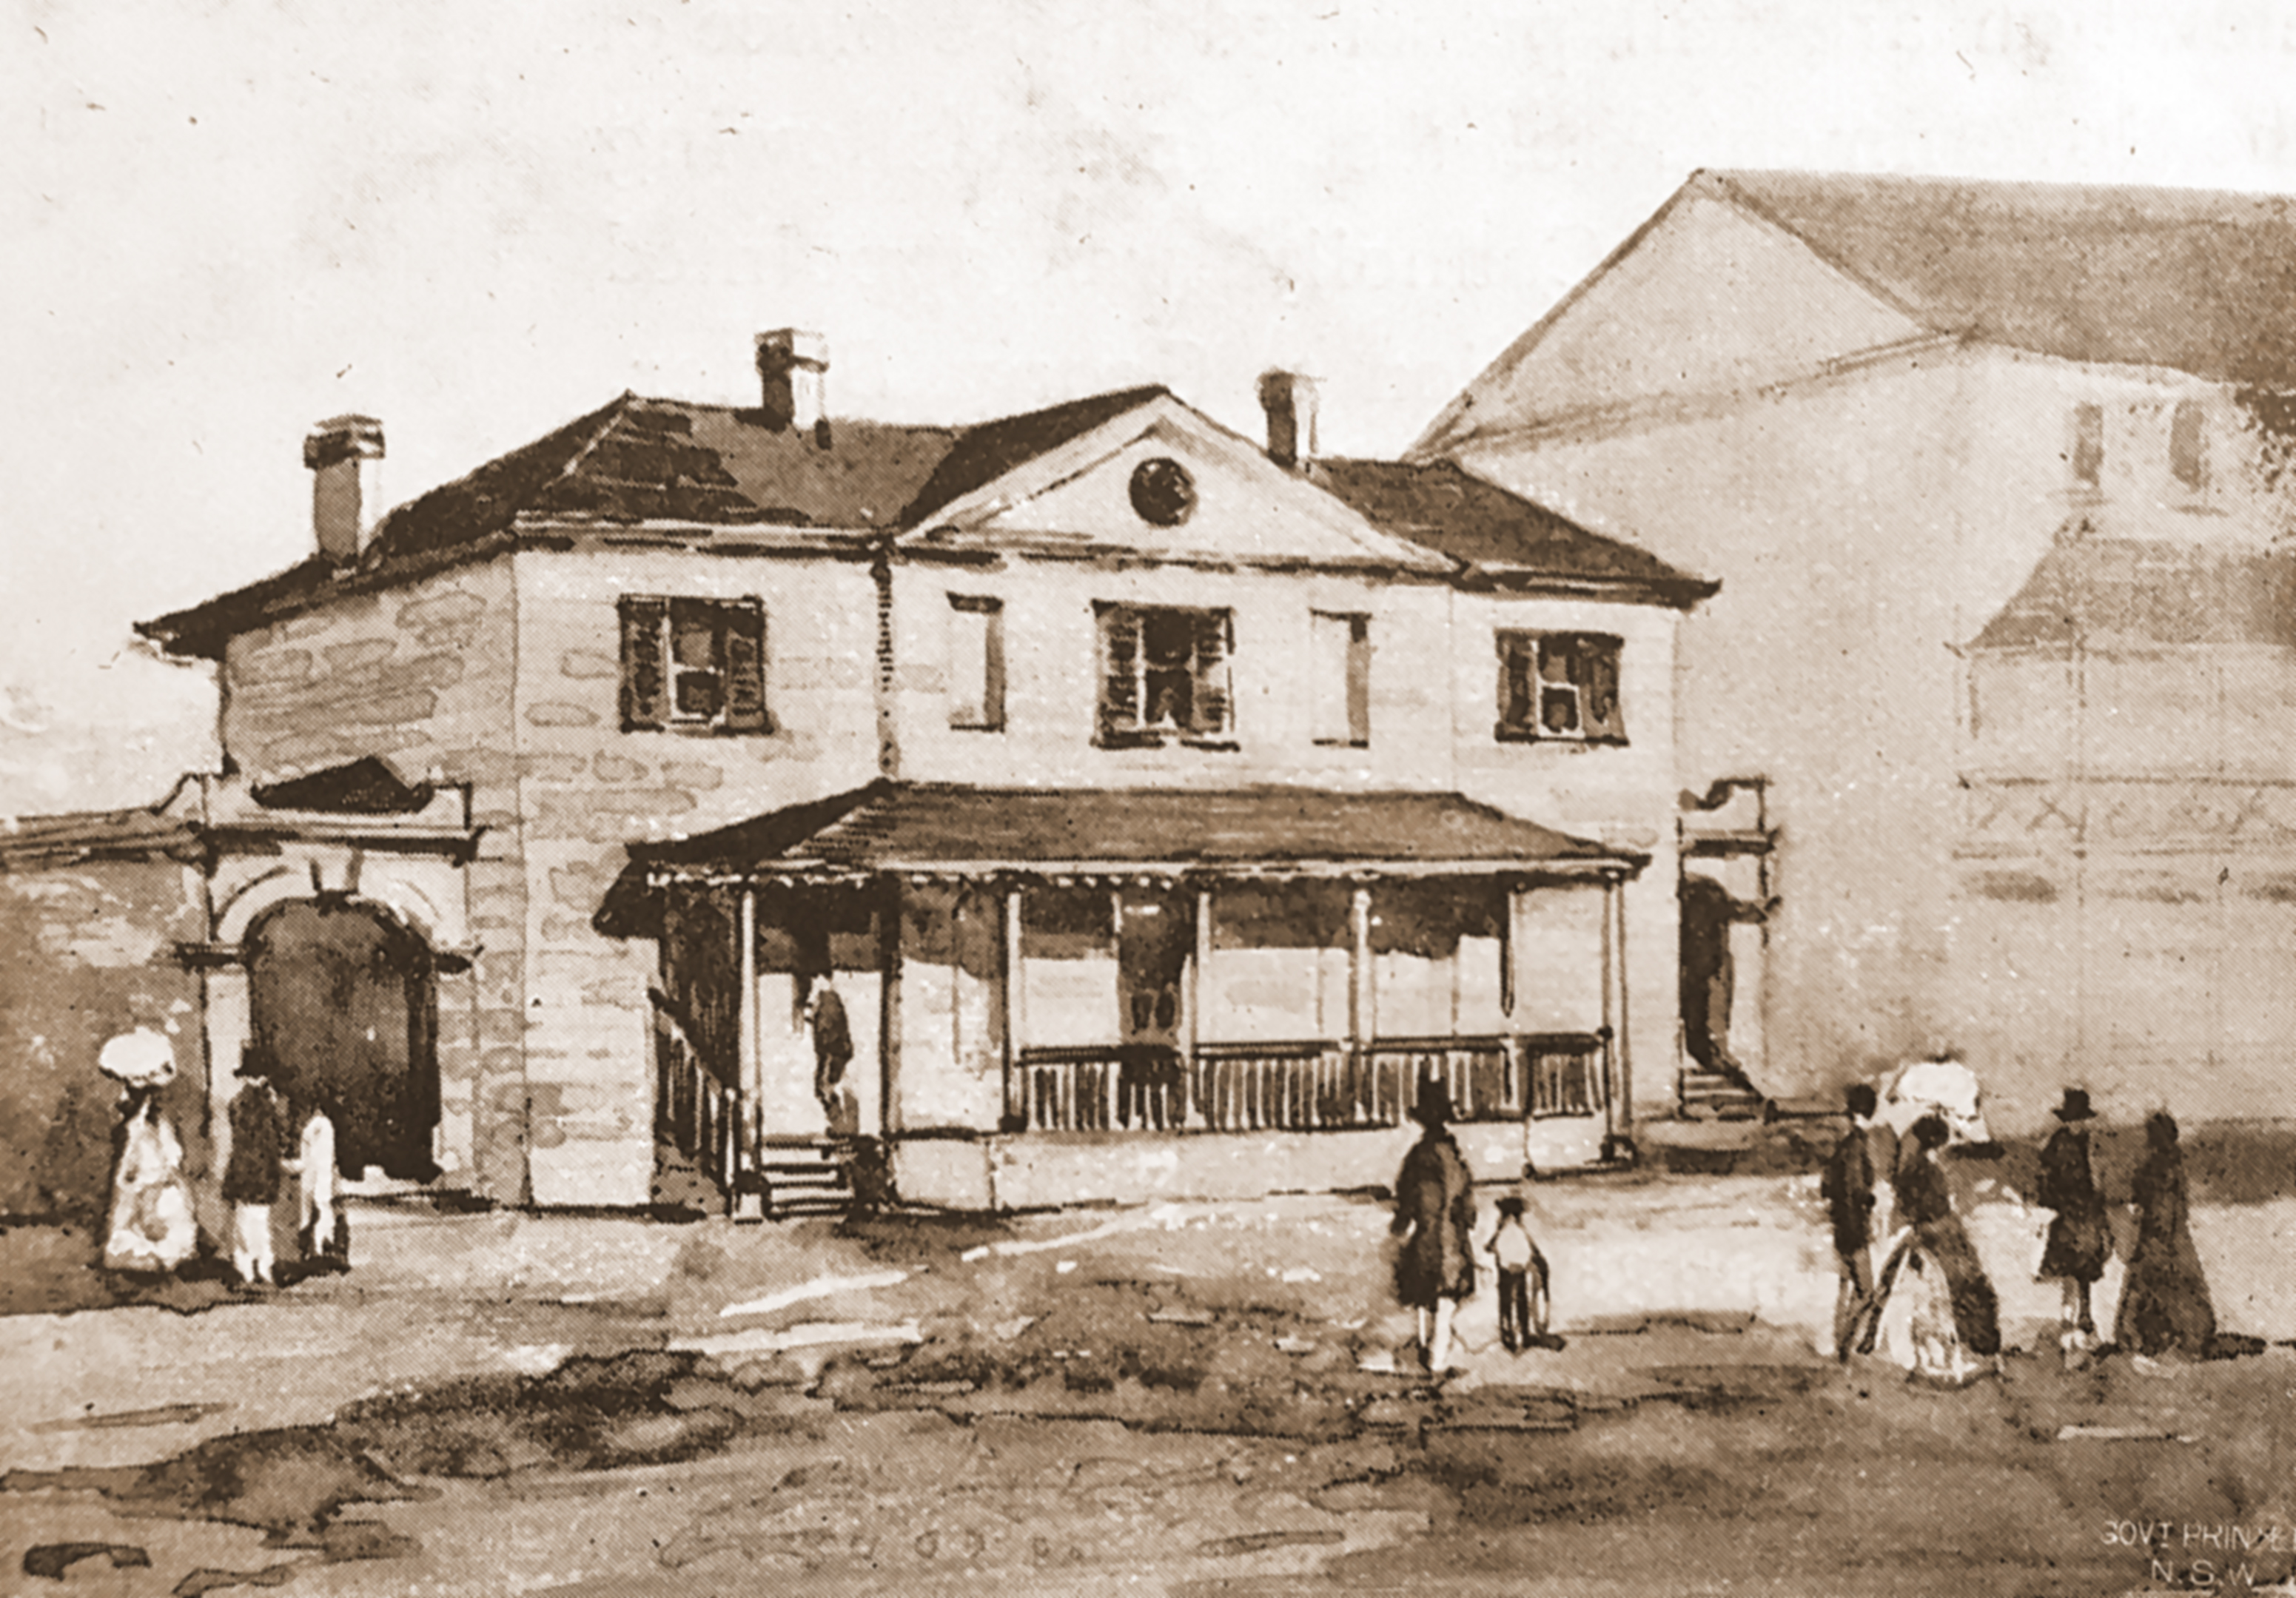 The old Post Office, George Street, illustration from Historical Notes, Bladen, 1911